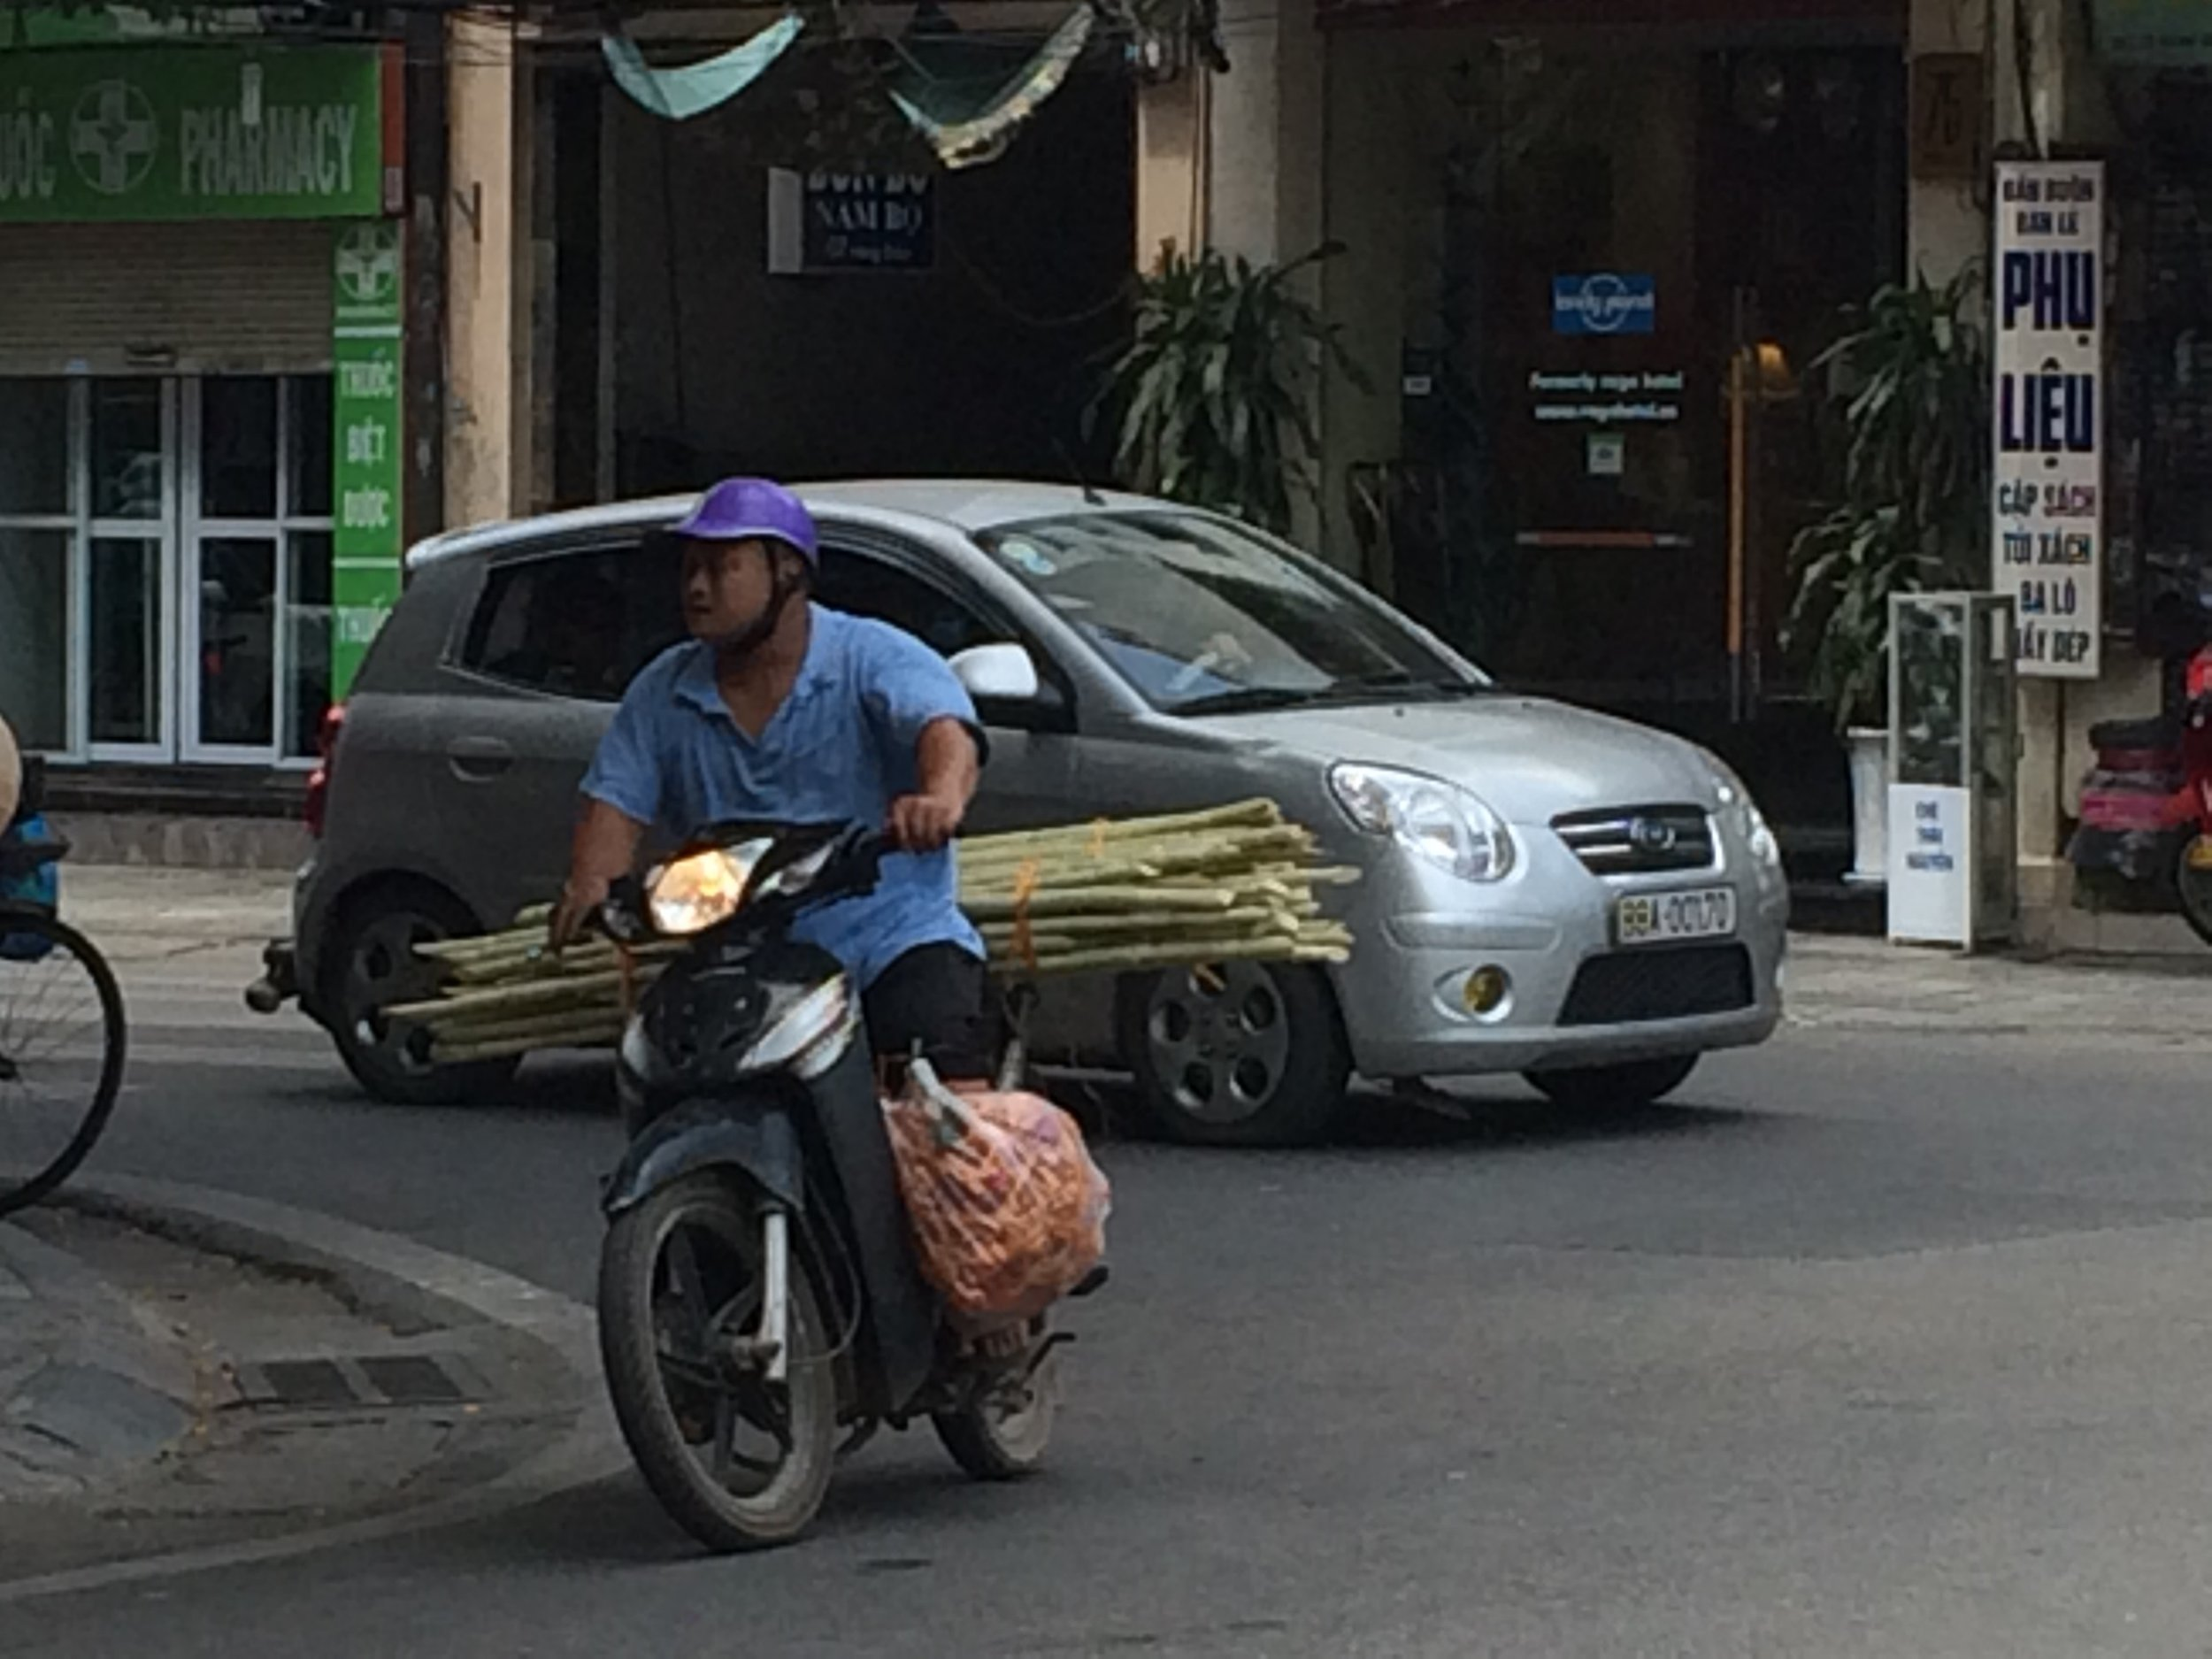 What is the oddest thing one can carry on a scooter?